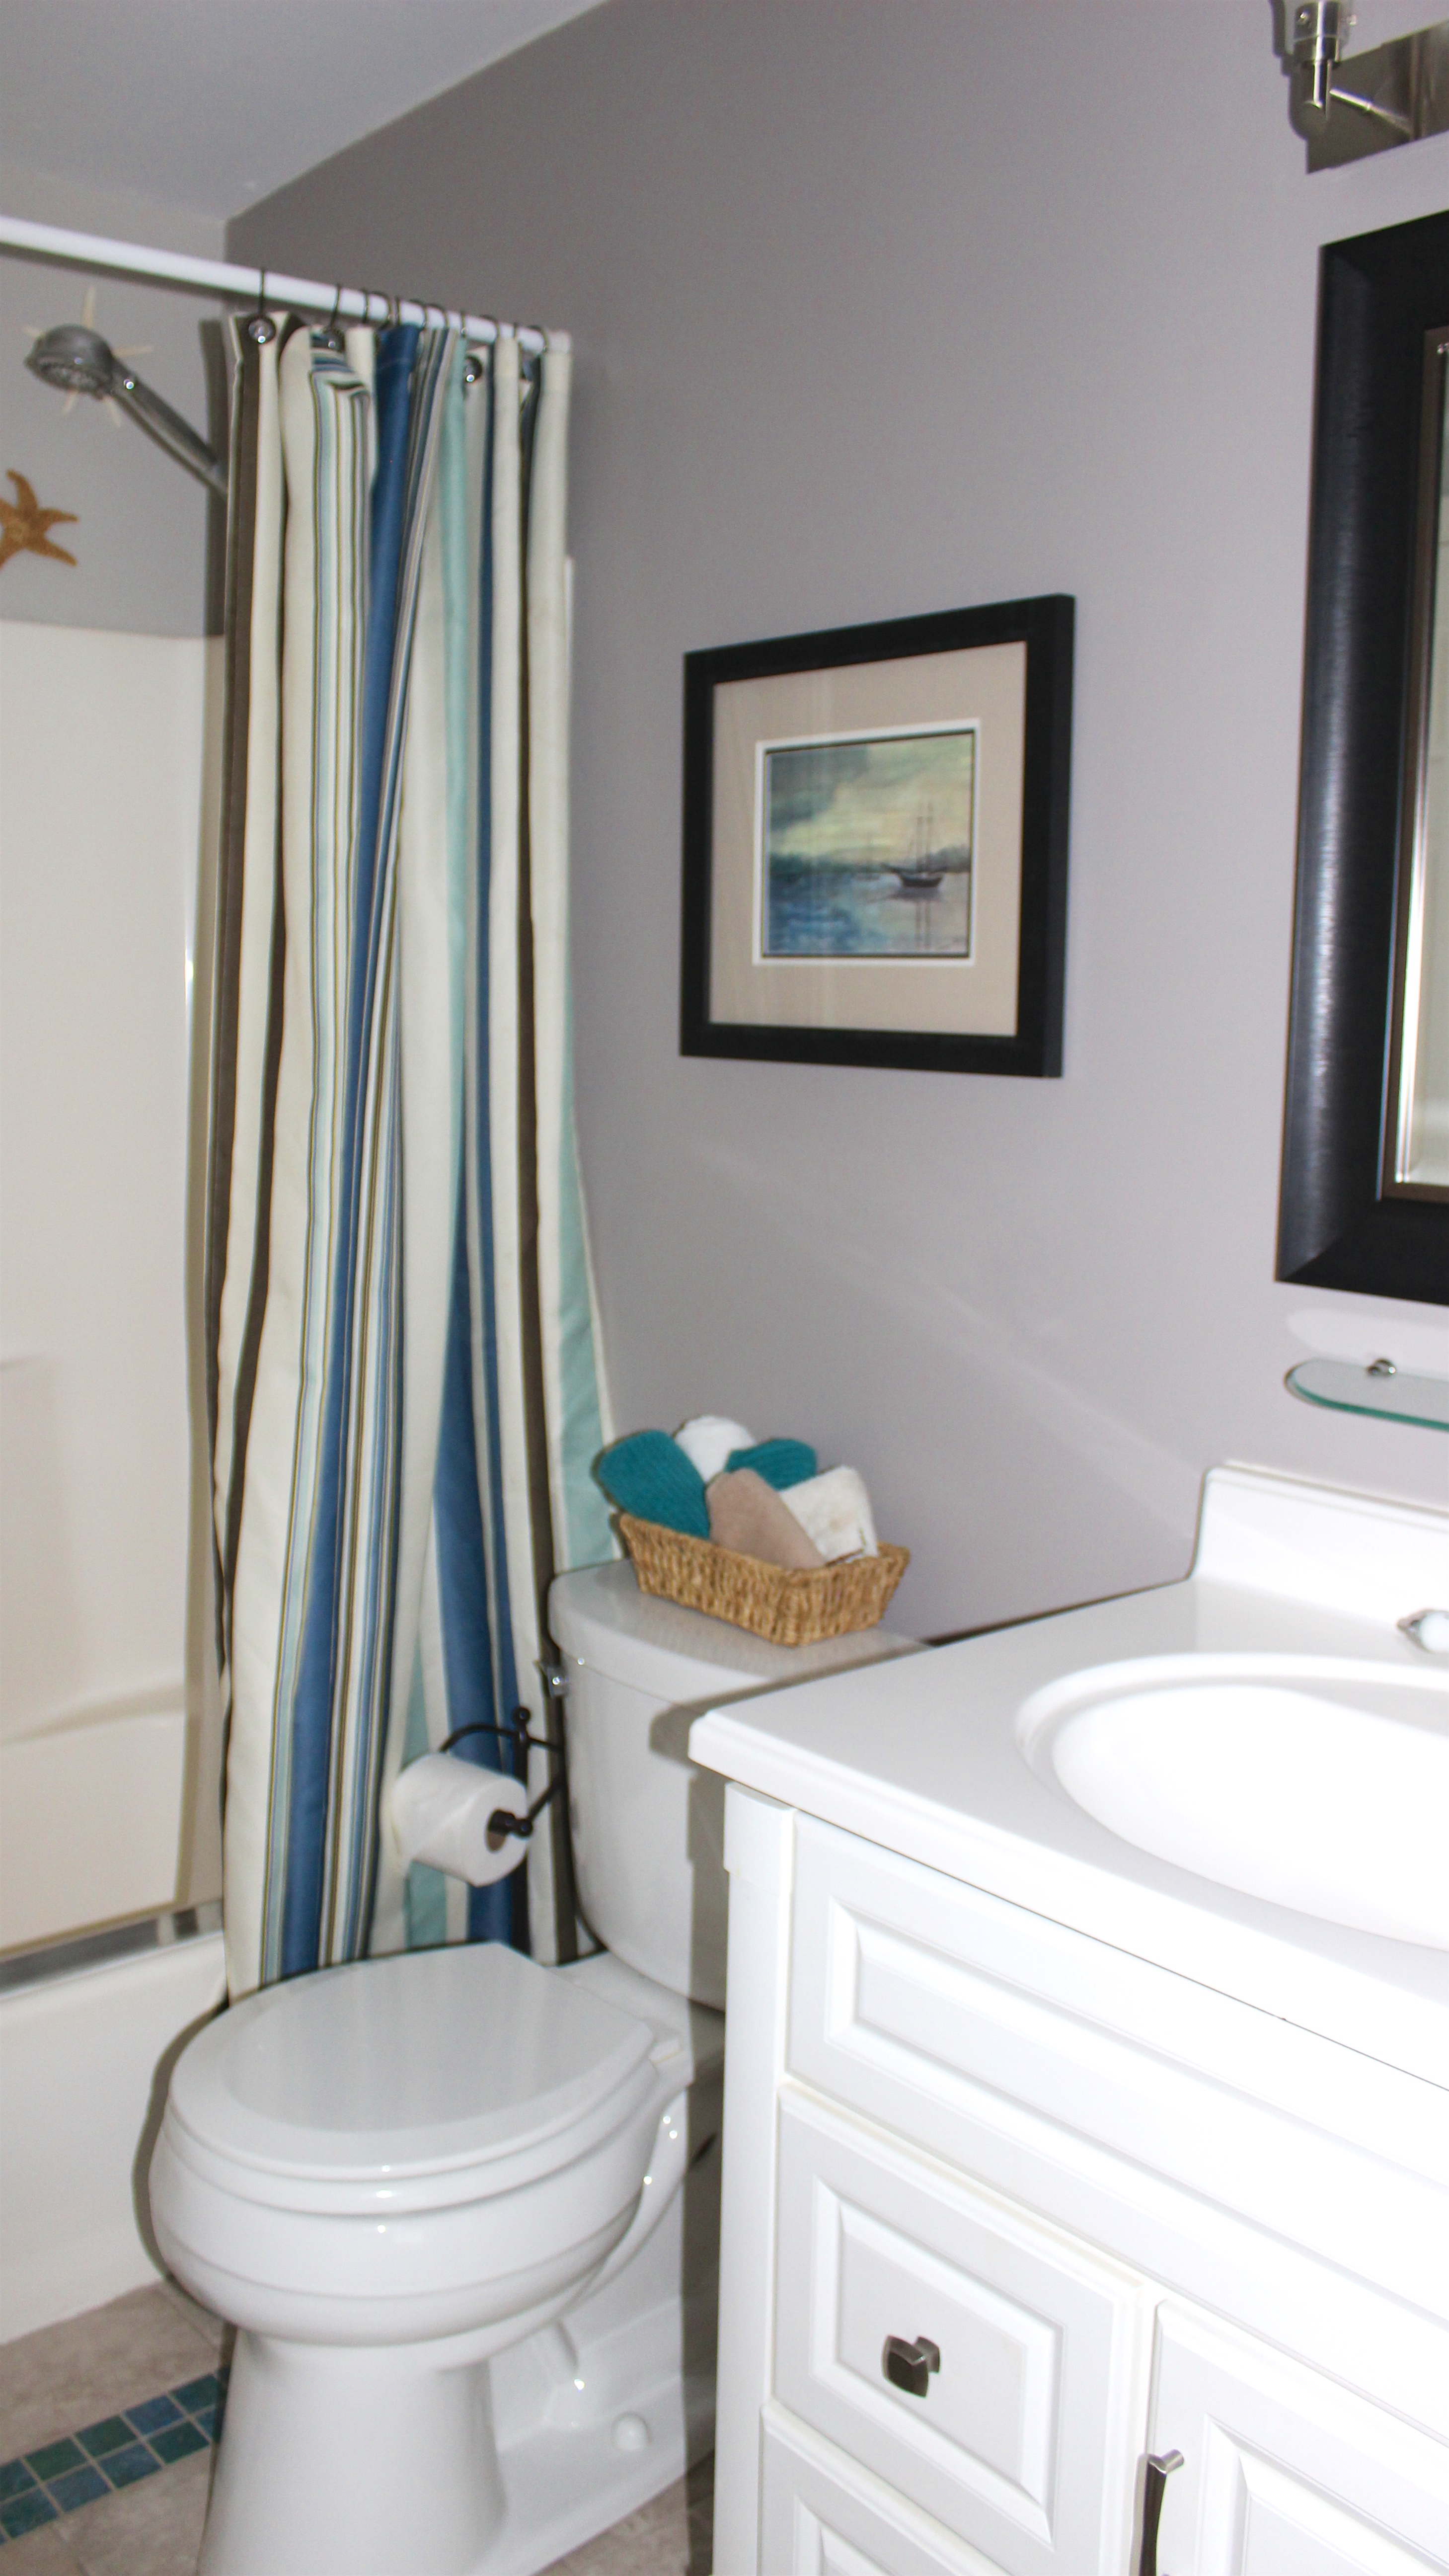 Recently redecorated, the bathroom is accessible from both the hall and bedroom.